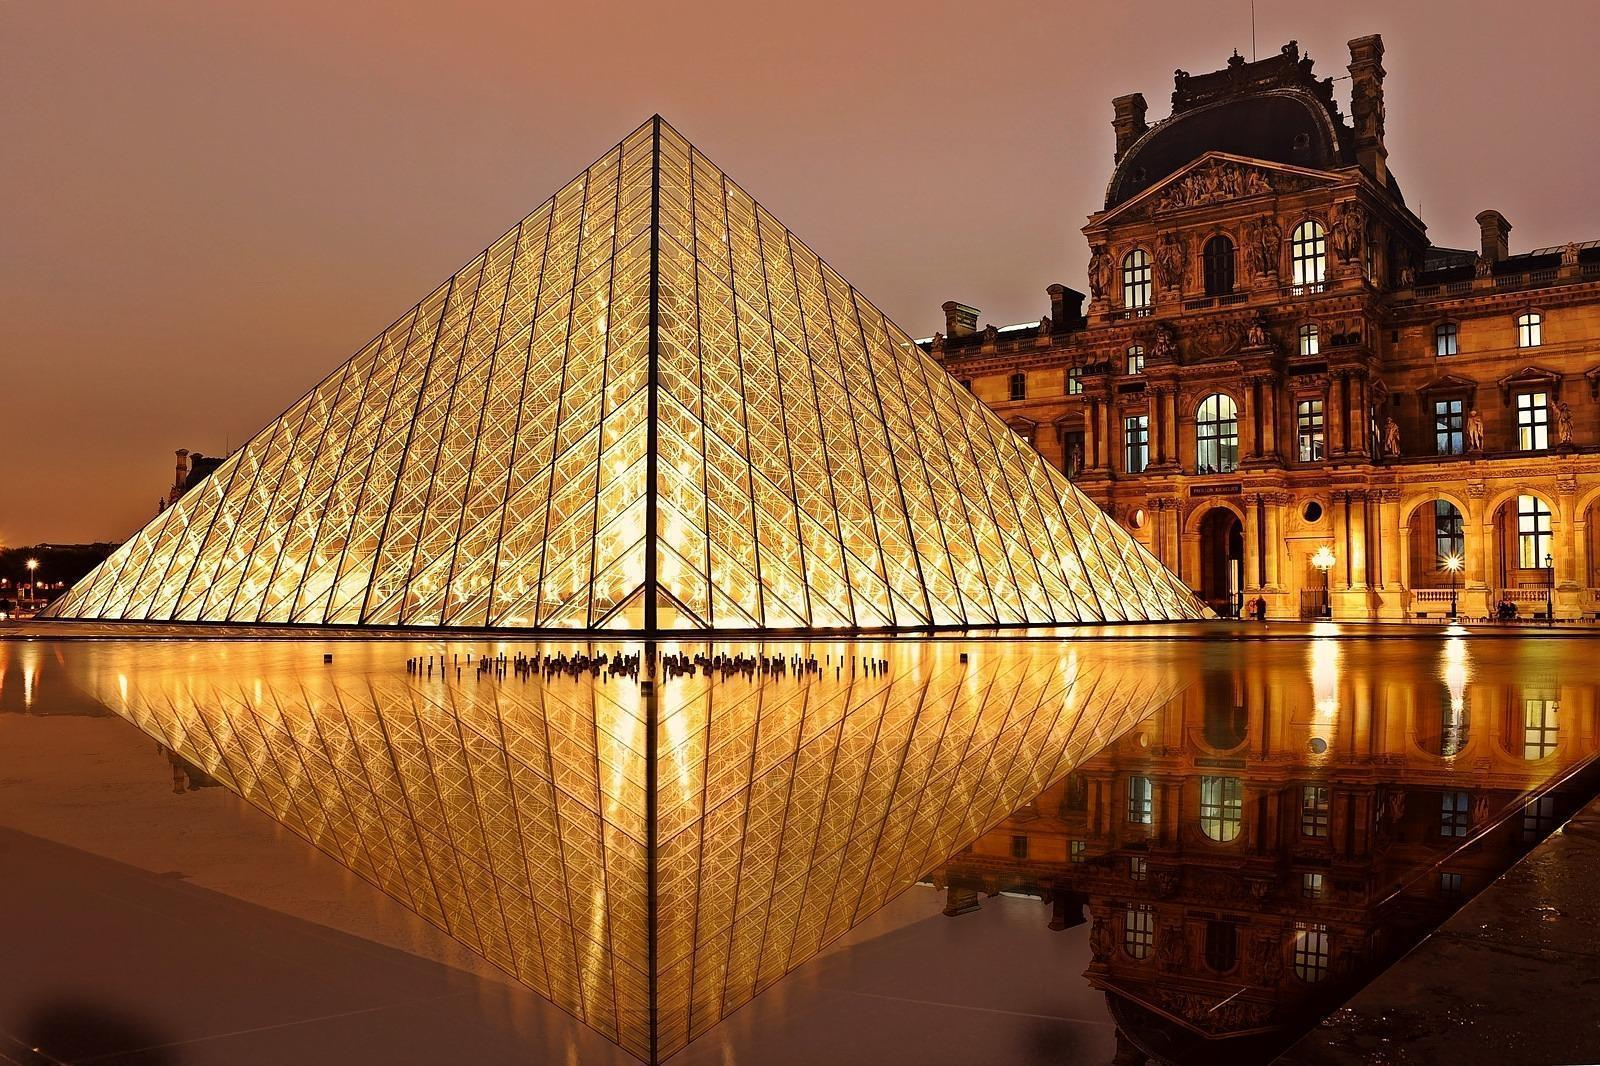 Entrance to the Louvre at Night